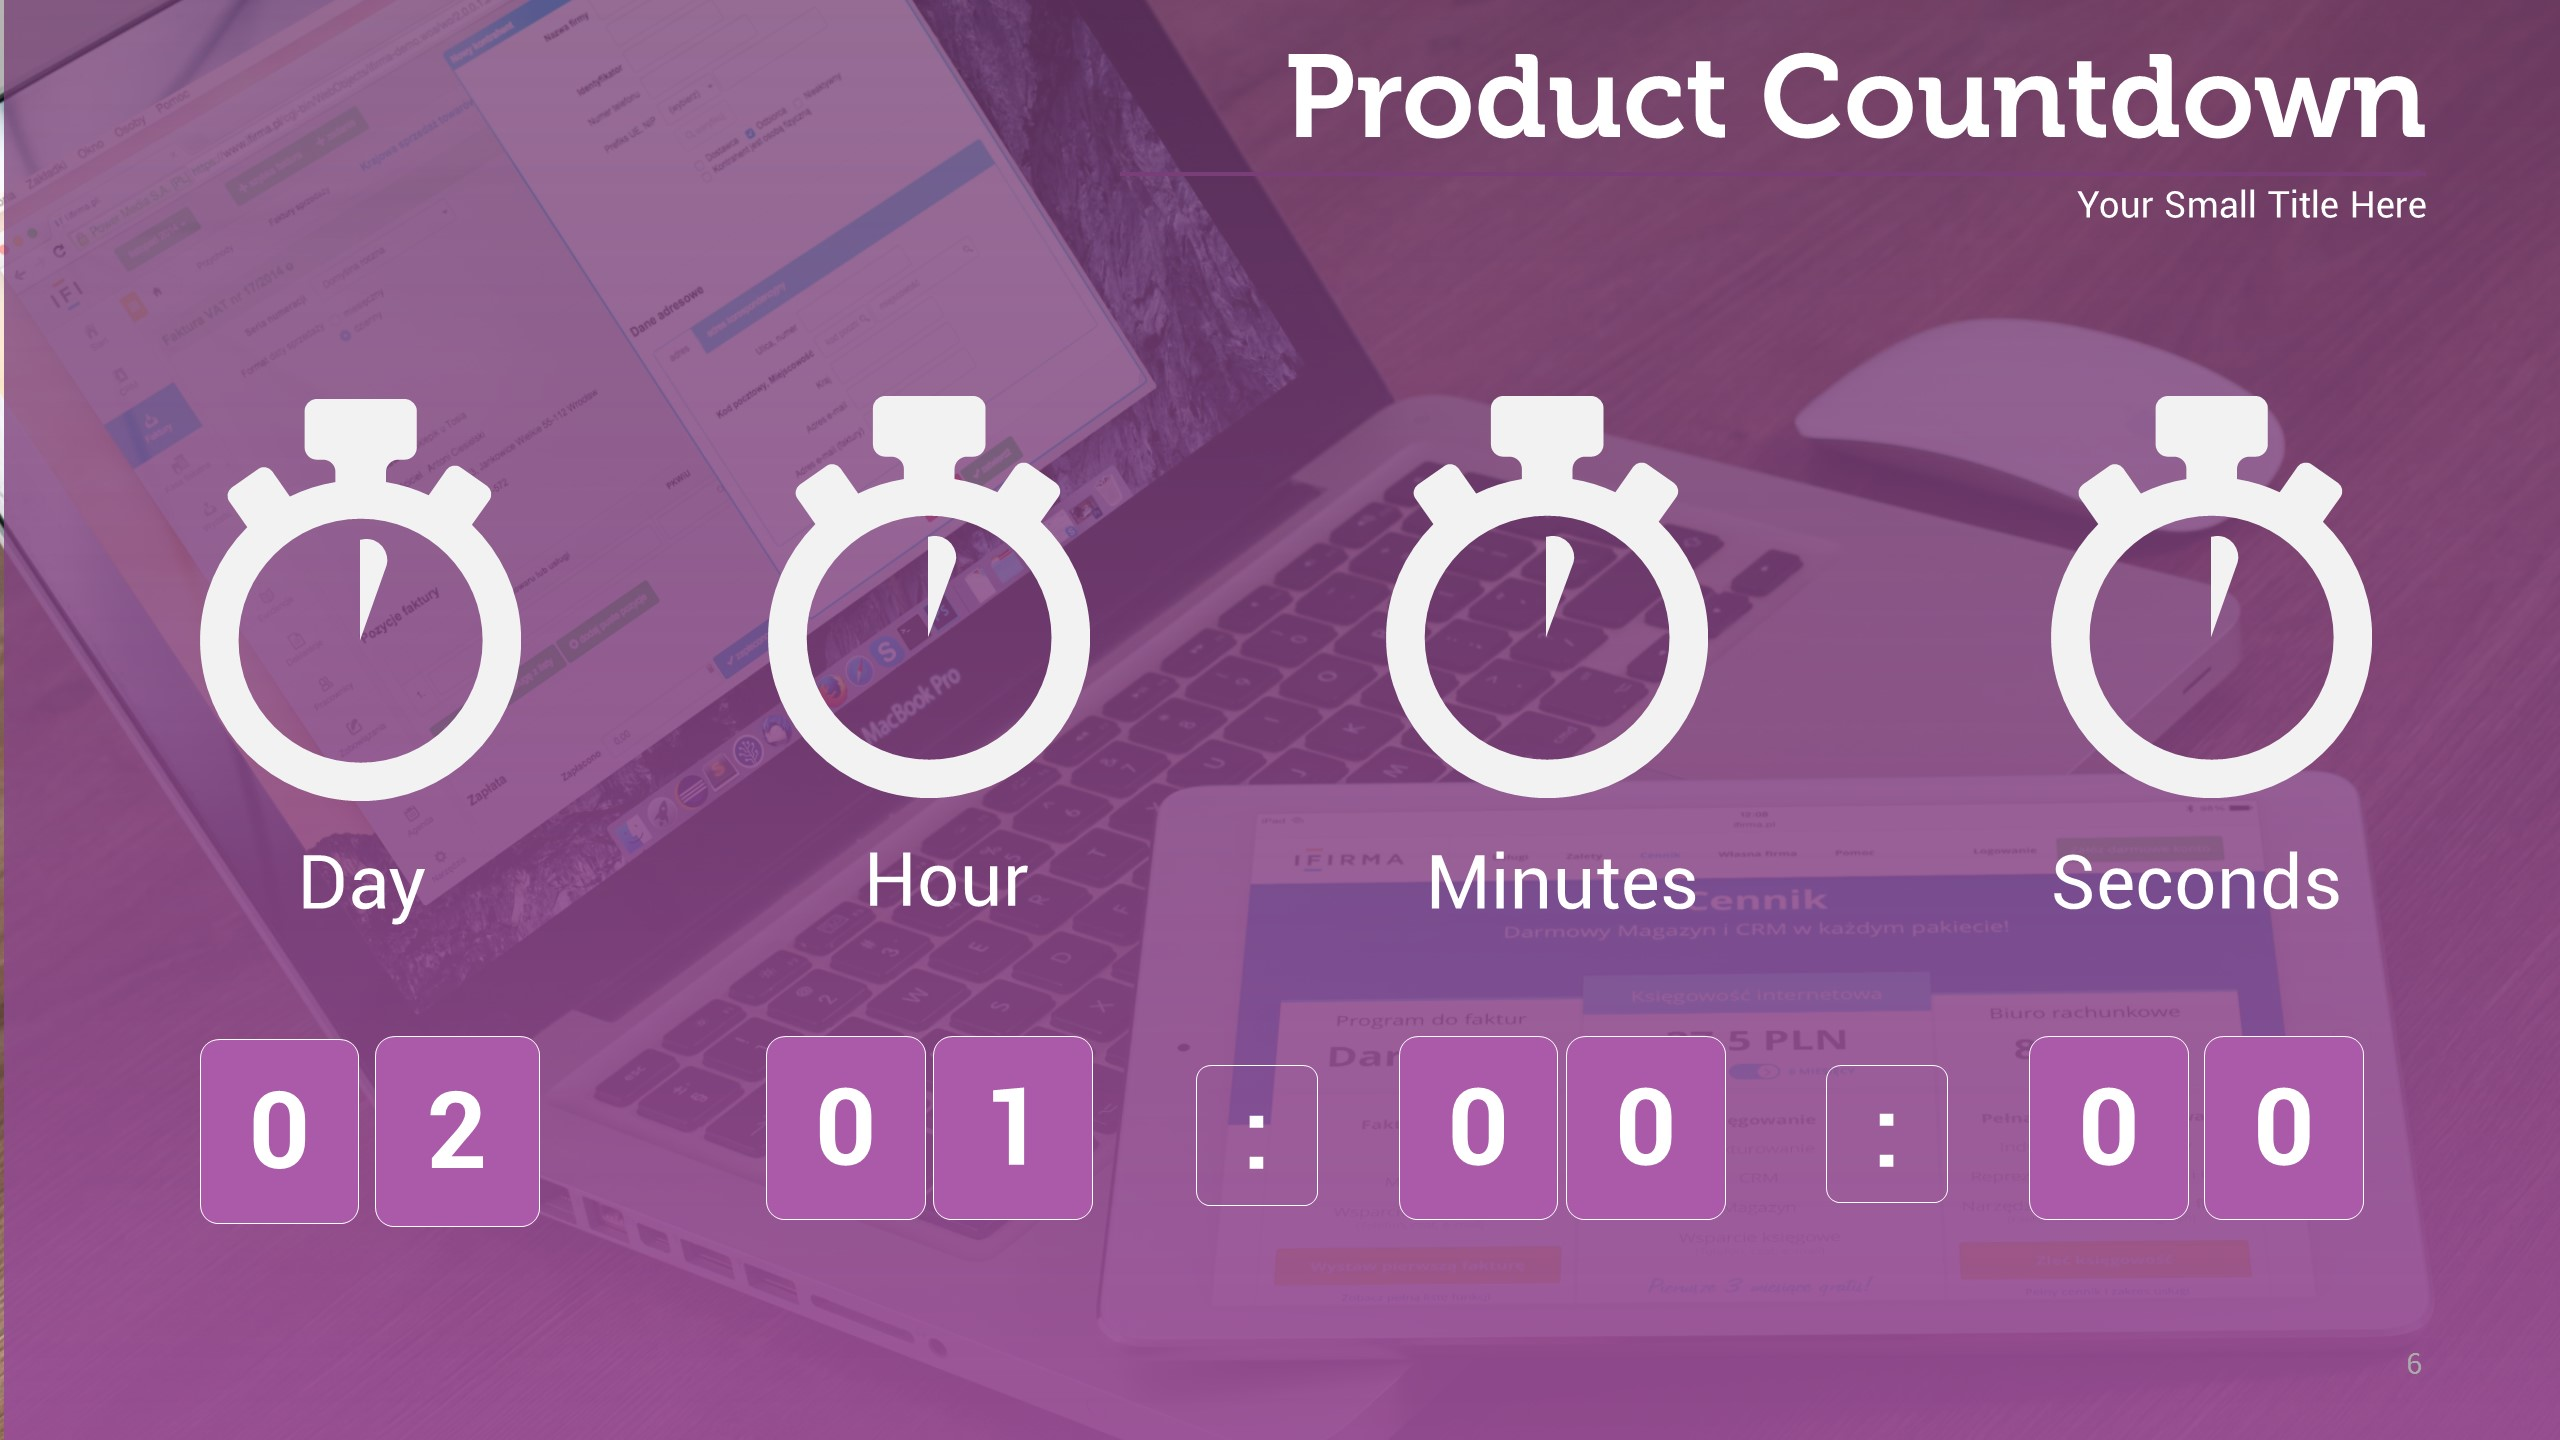 Product countdown infographic